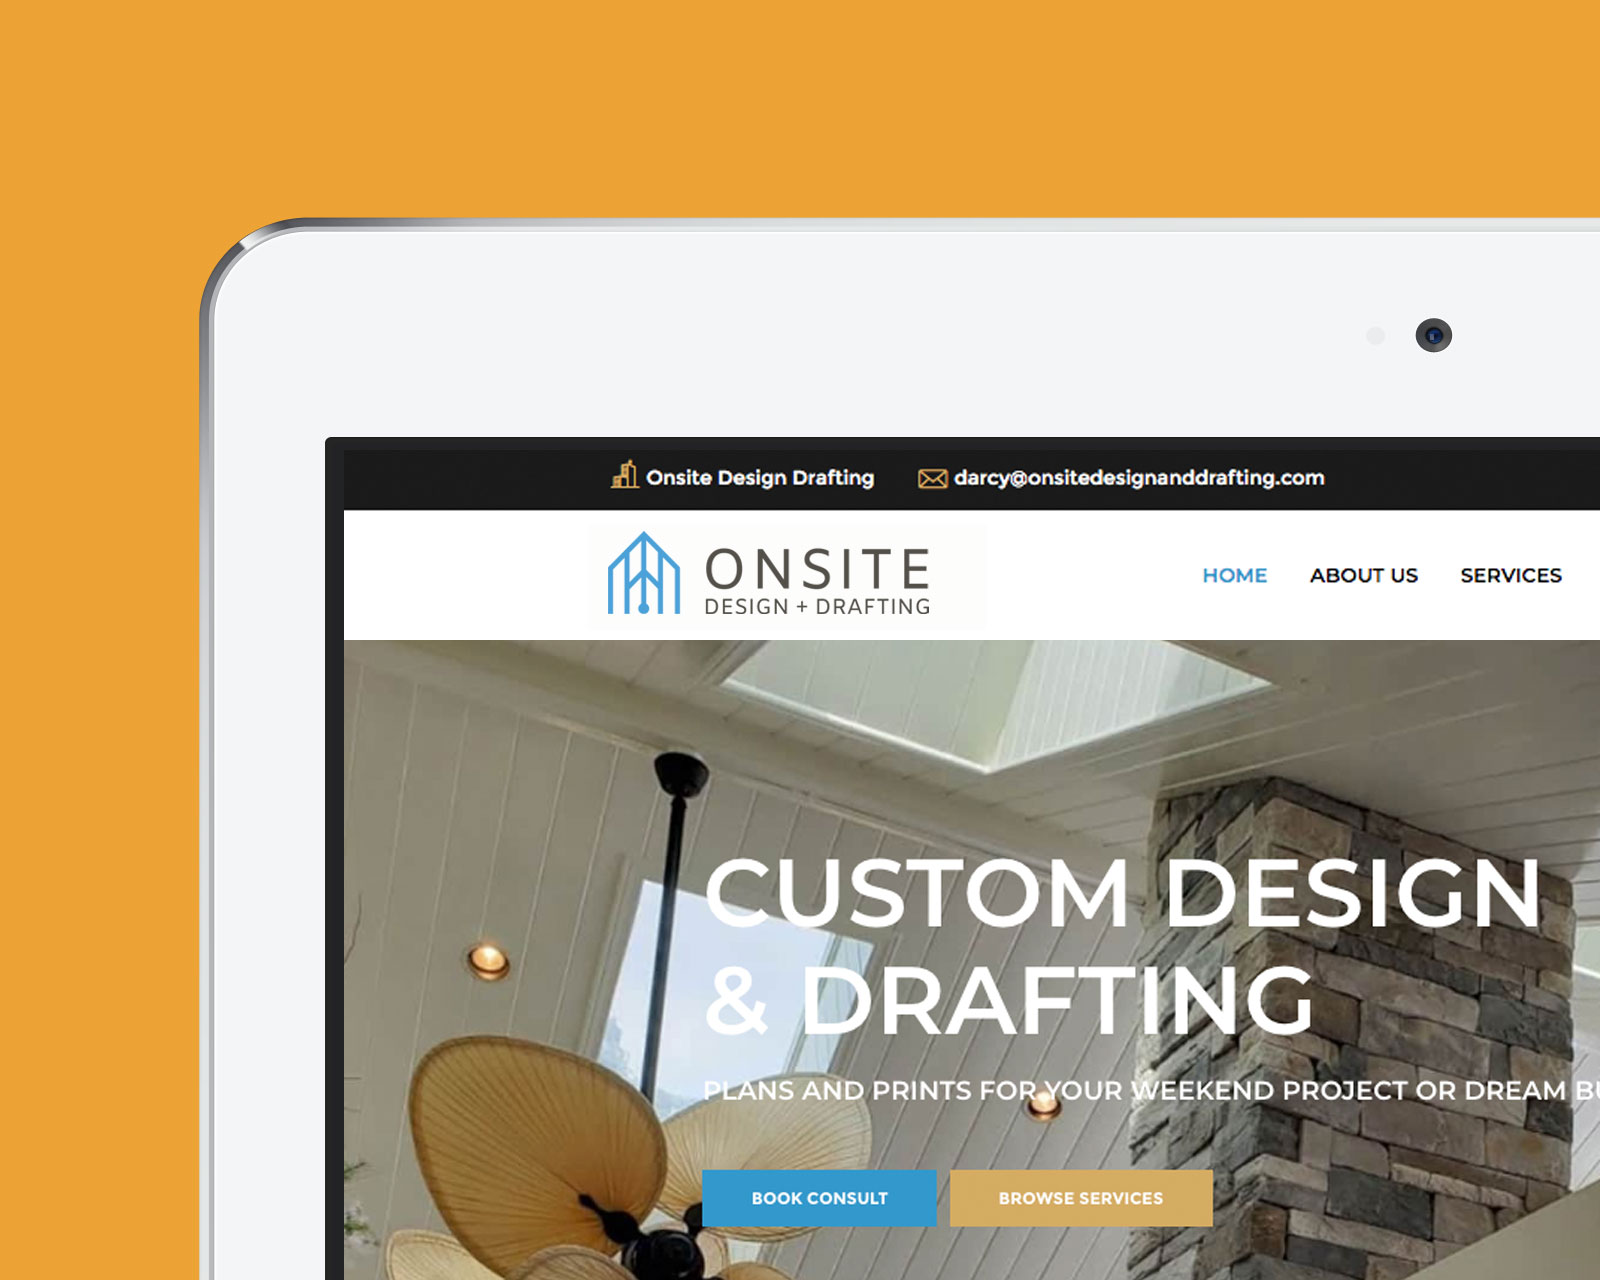 onsite design and drafting website homepage on laptop